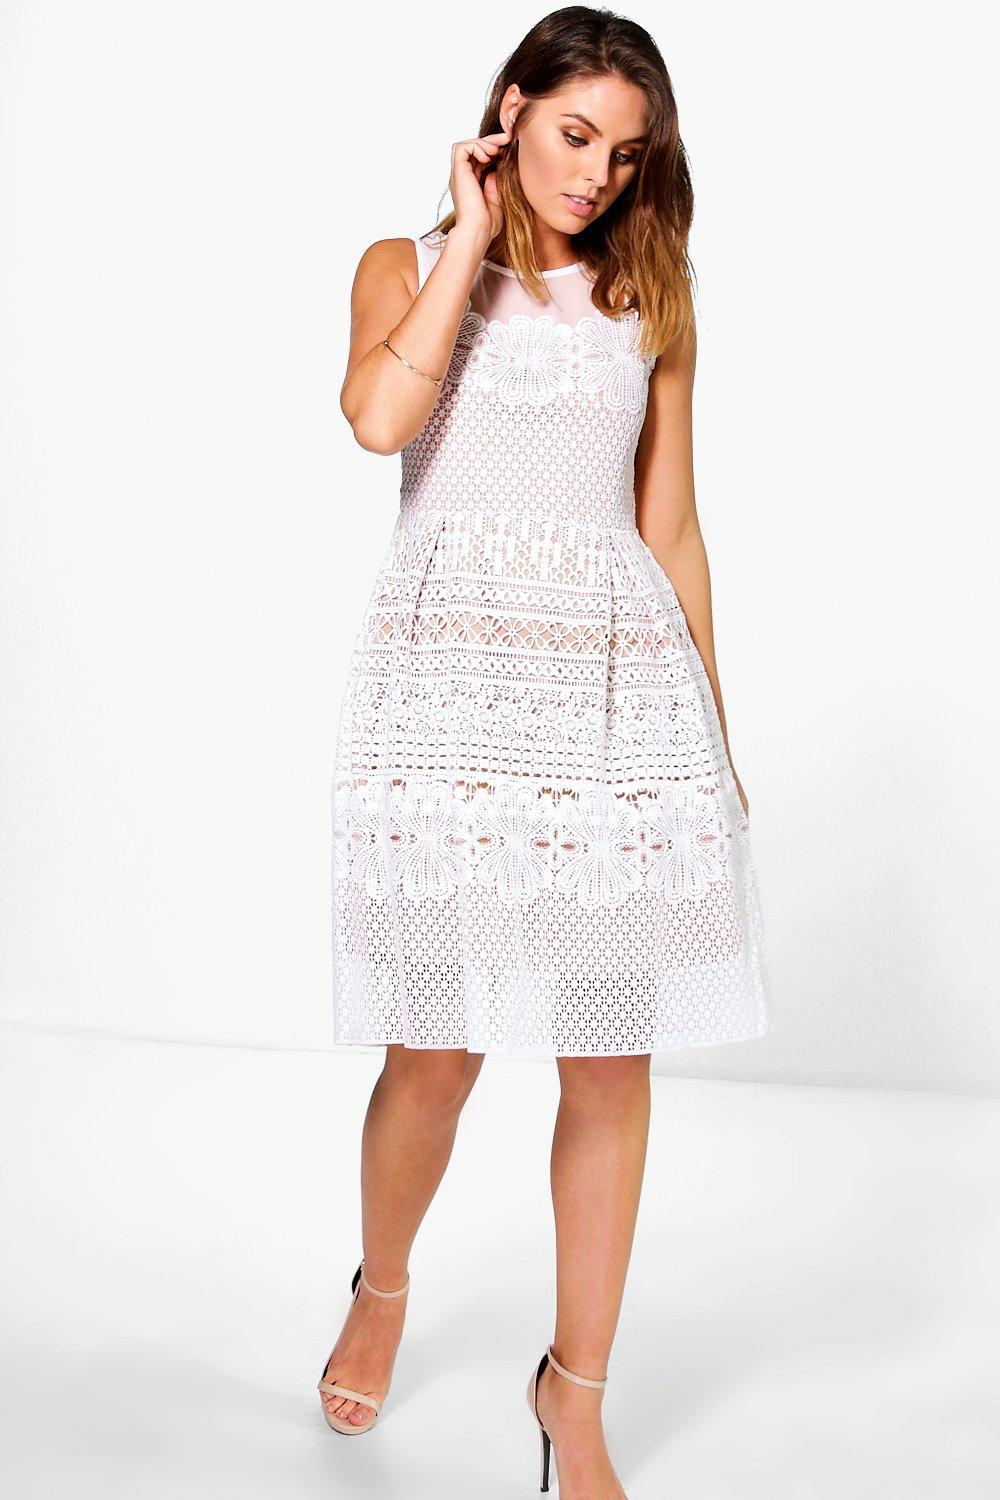 Ashlee Crochet Underlay Dress White - sleeve style: sleeveless; predominant colour: white; occasions: evening; length: on the knee; fit: fitted at waist & bust; style: fit & flare; fibres: polyester/polyamide - 100%; neckline: crew; sleeve length: sleeveless; texture group: knits/crochet; pattern type: fabric; pattern size: standard; pattern: patterned/print; season: s/s 2016; wardrobe: event